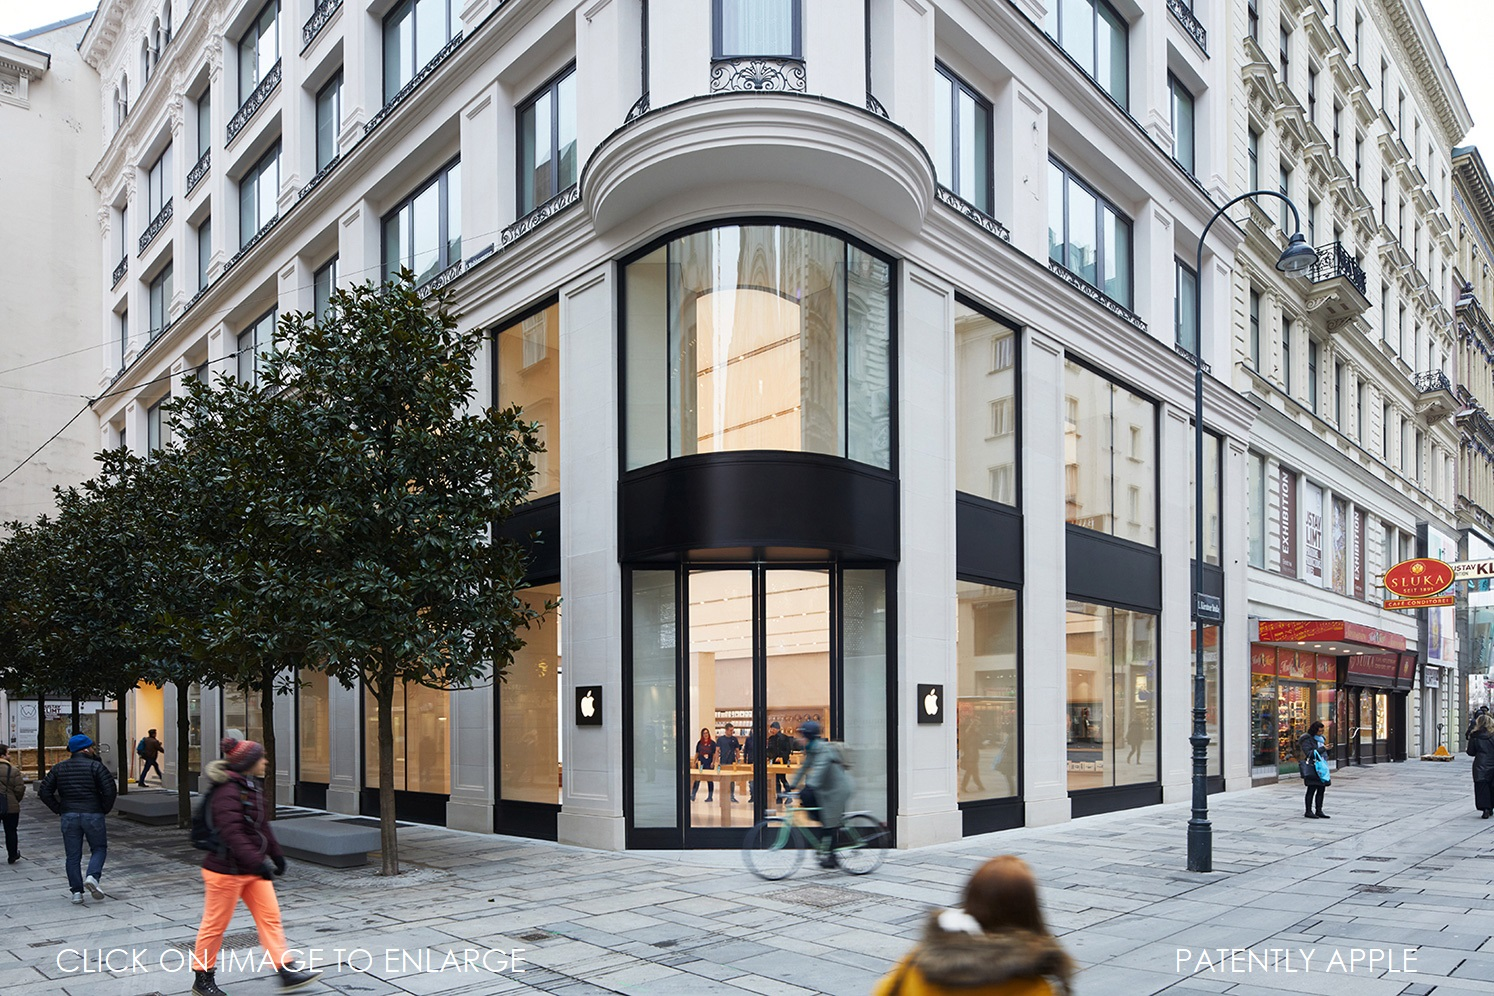 The new Apple Store in Vienna Officially Opens this Weekend